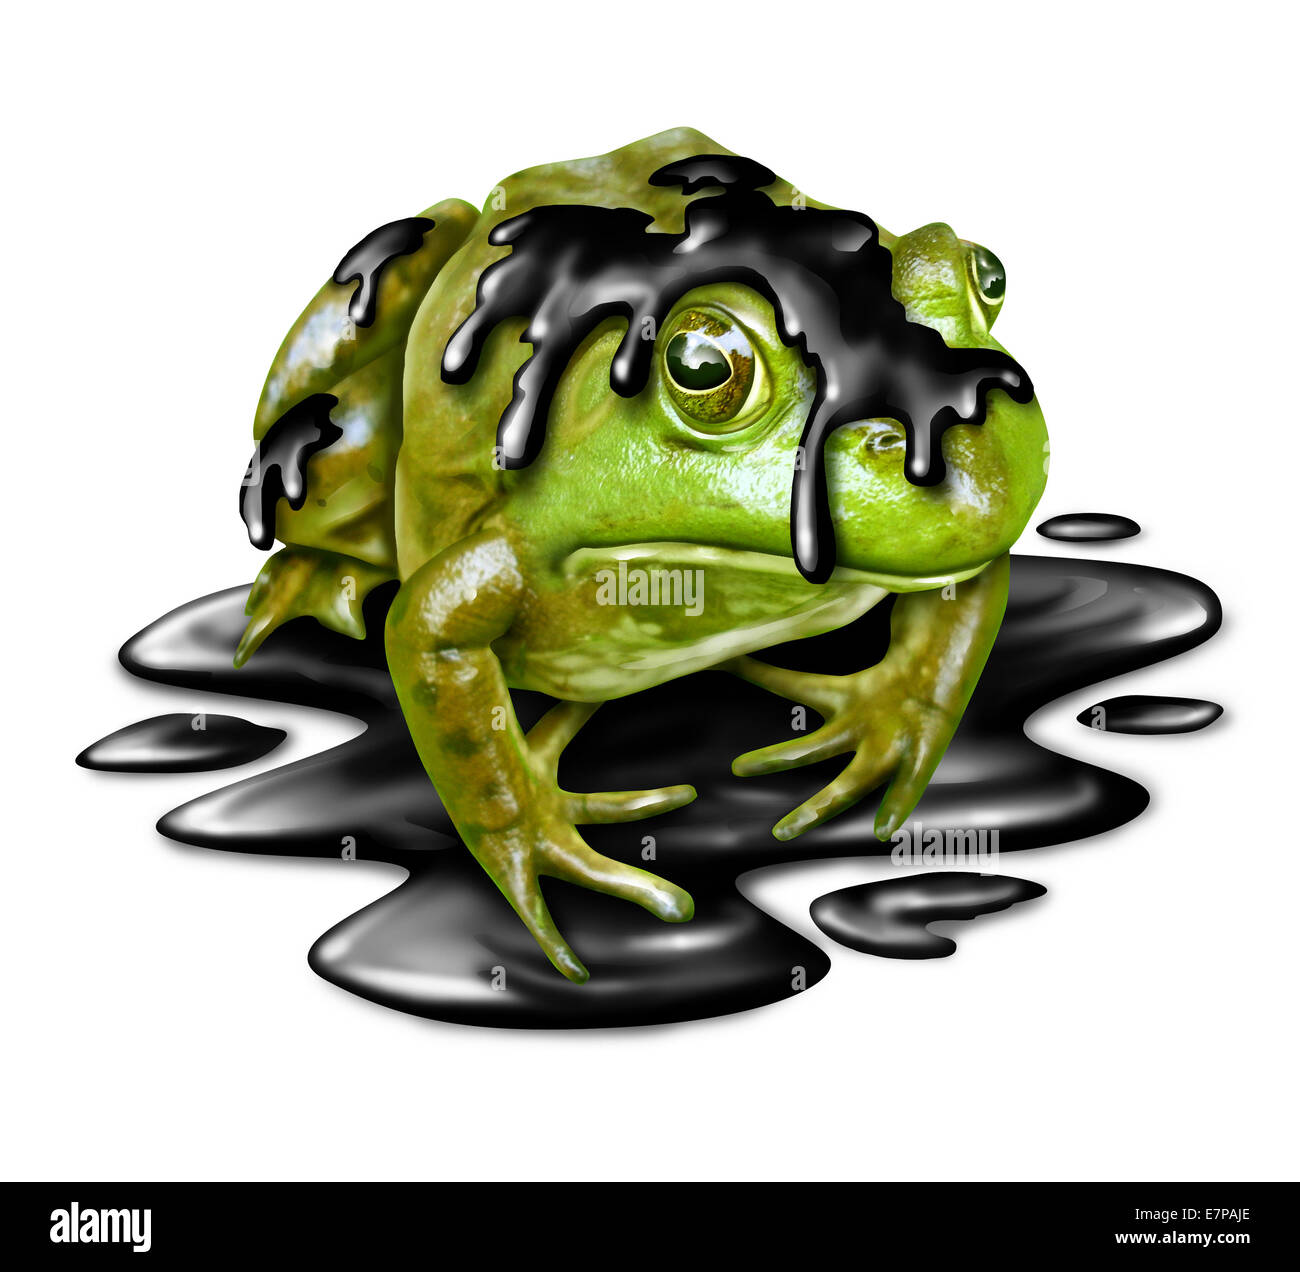 Polluted fauna and oil disaster victim concept as a dirty green frog with black crude petroleum liquid dripping - Stock Image